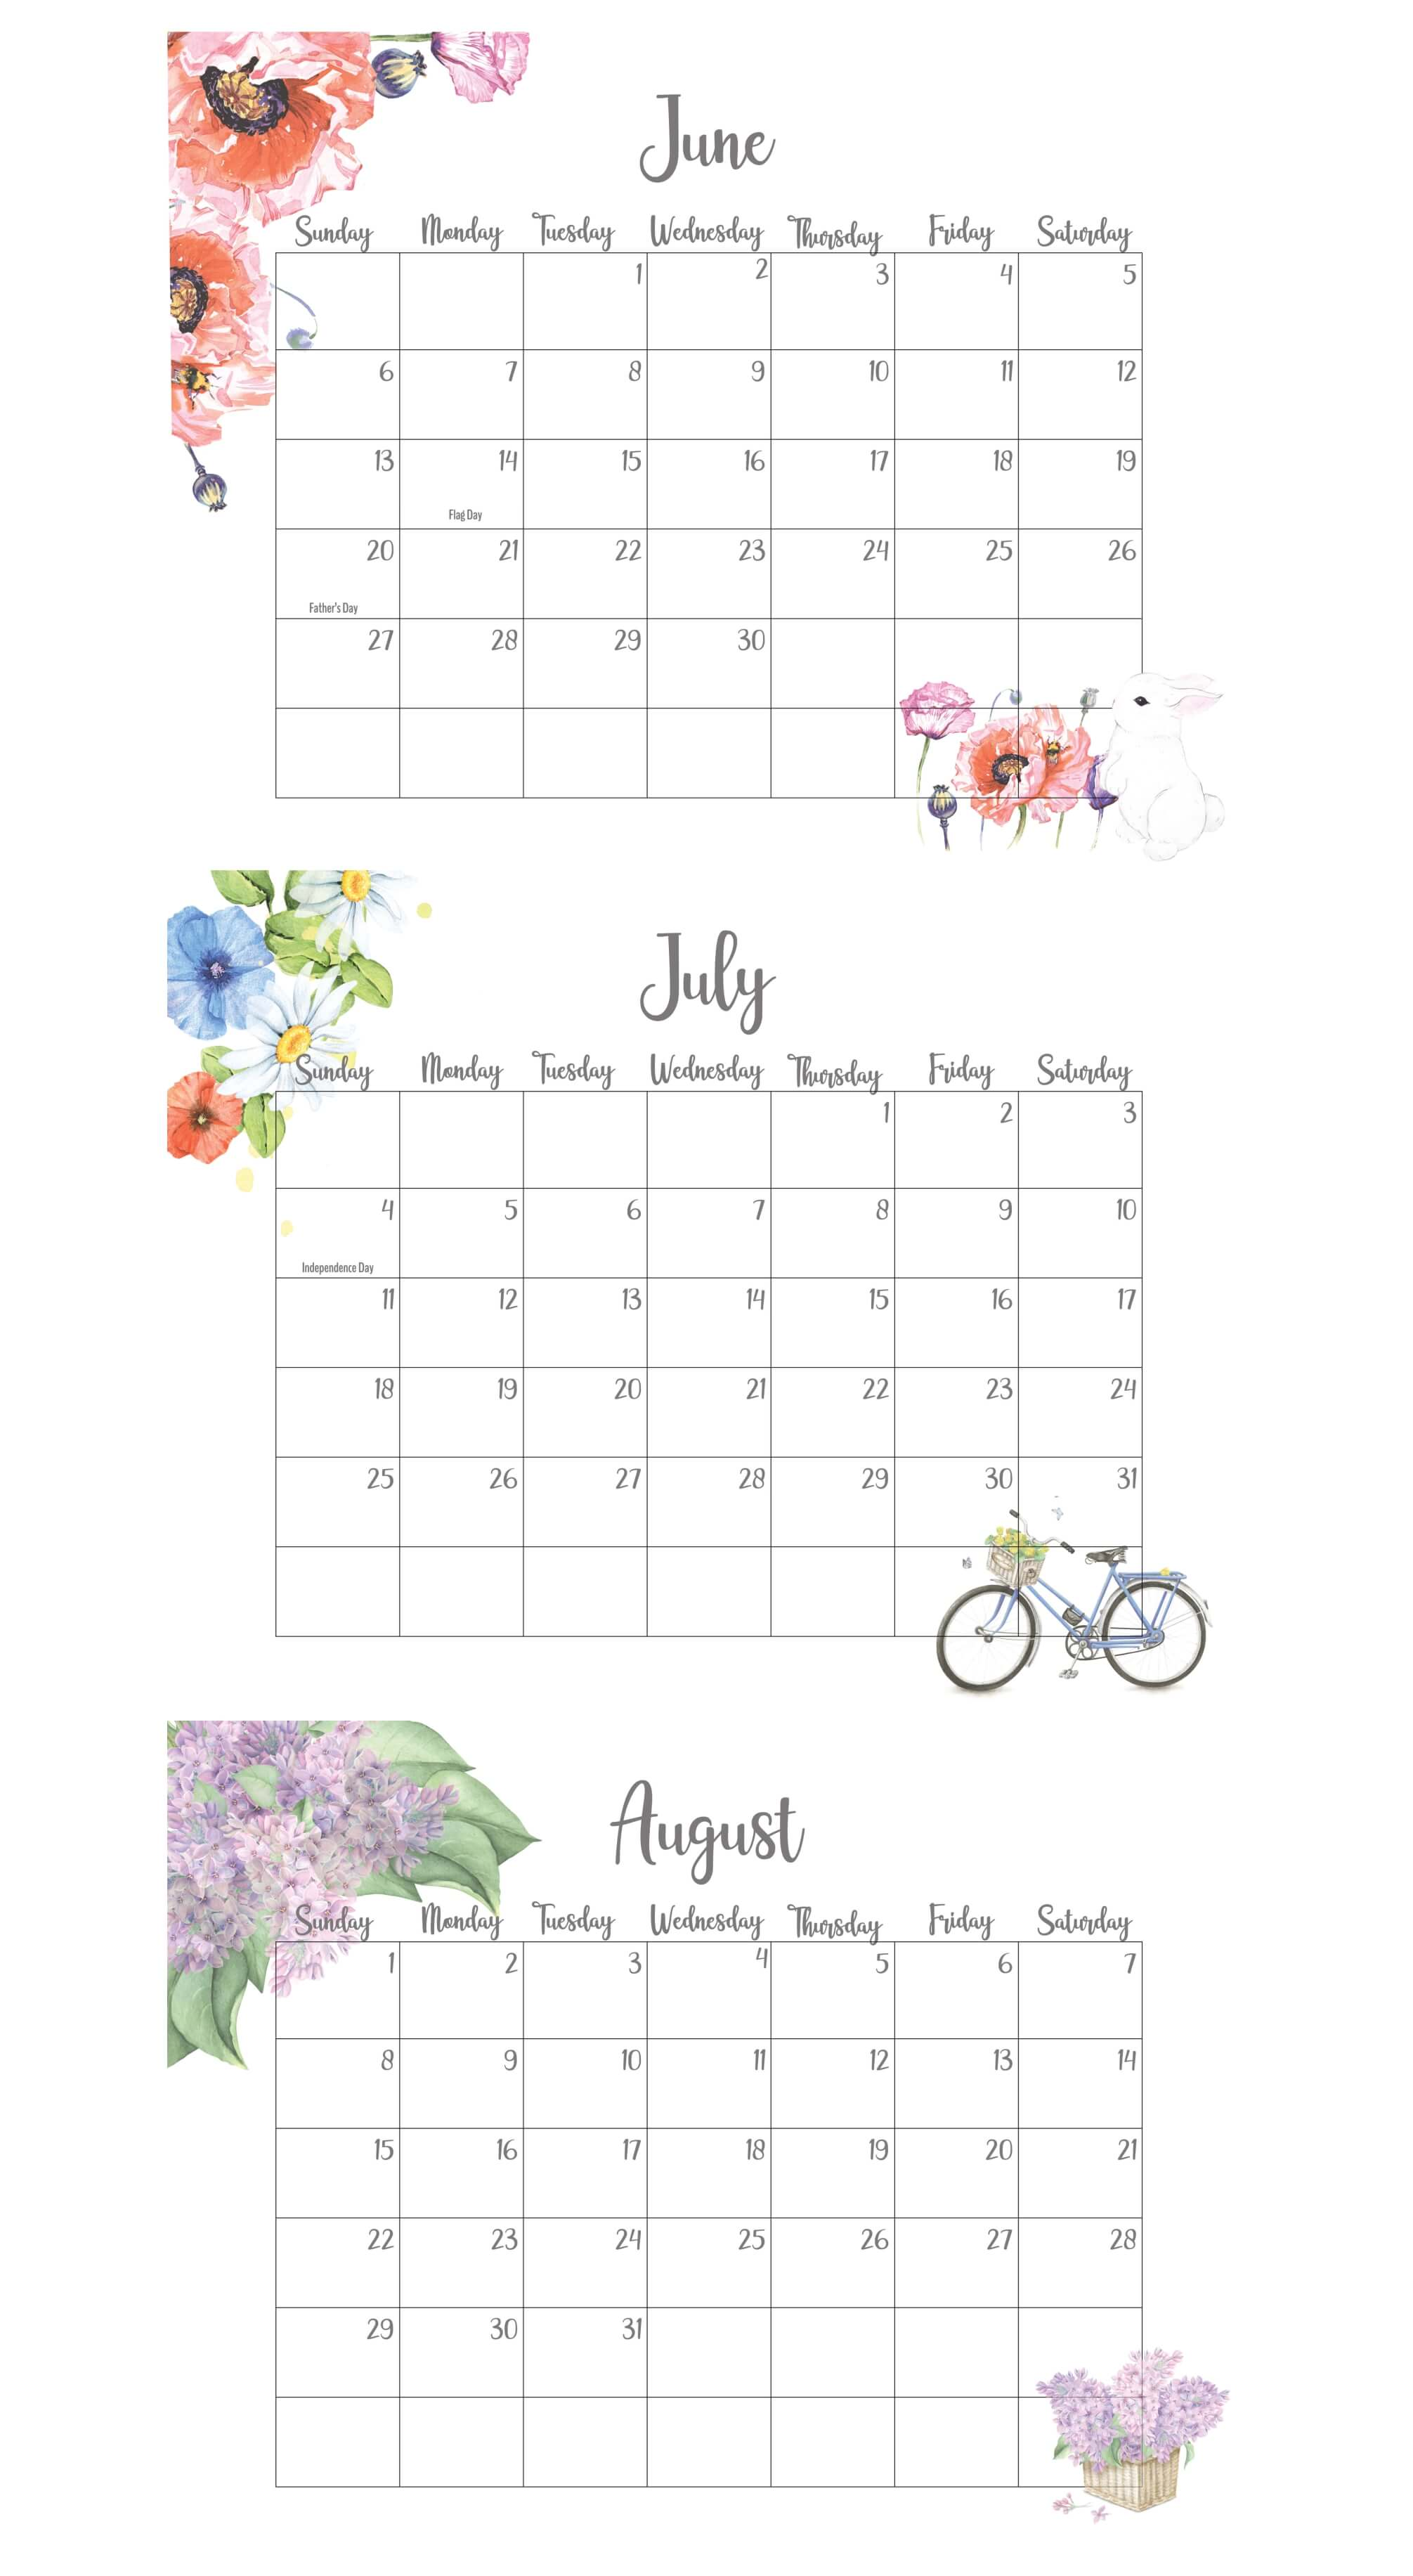 June To August Calendar 2021 Templates - Time Management ...